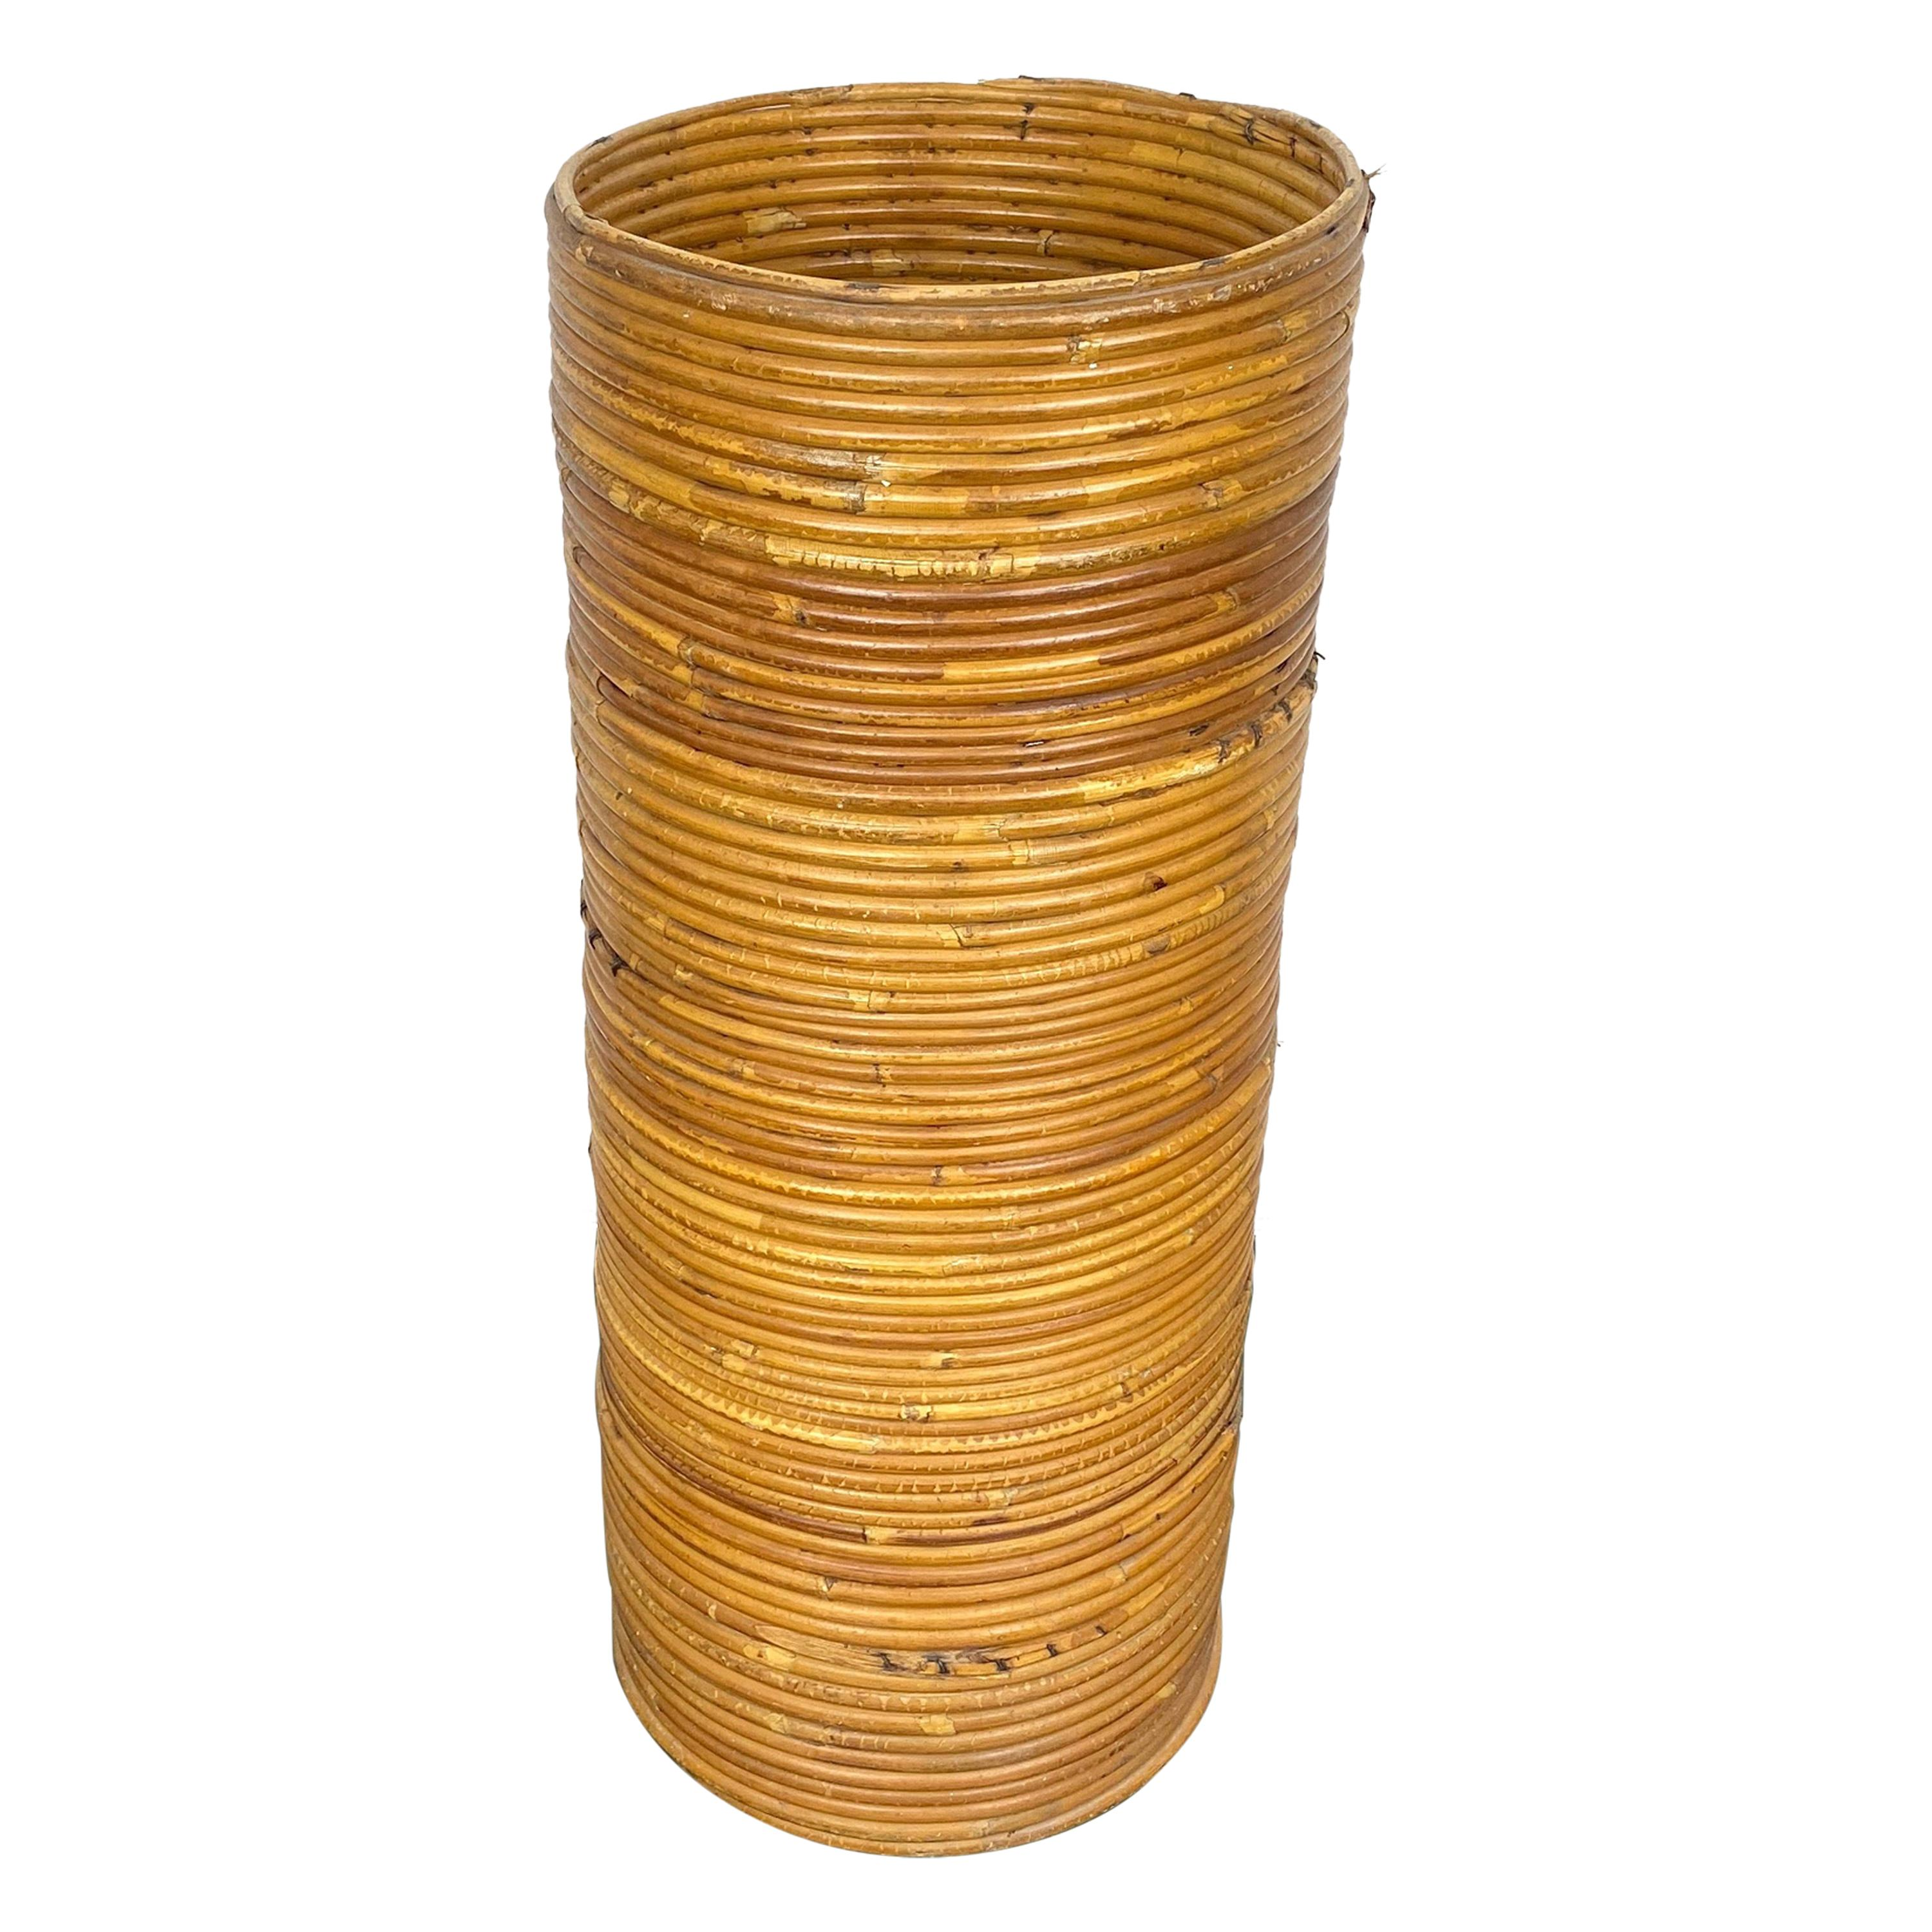 Rattan Cylindrical Umbrella Stand Basket, Italy, 1960s